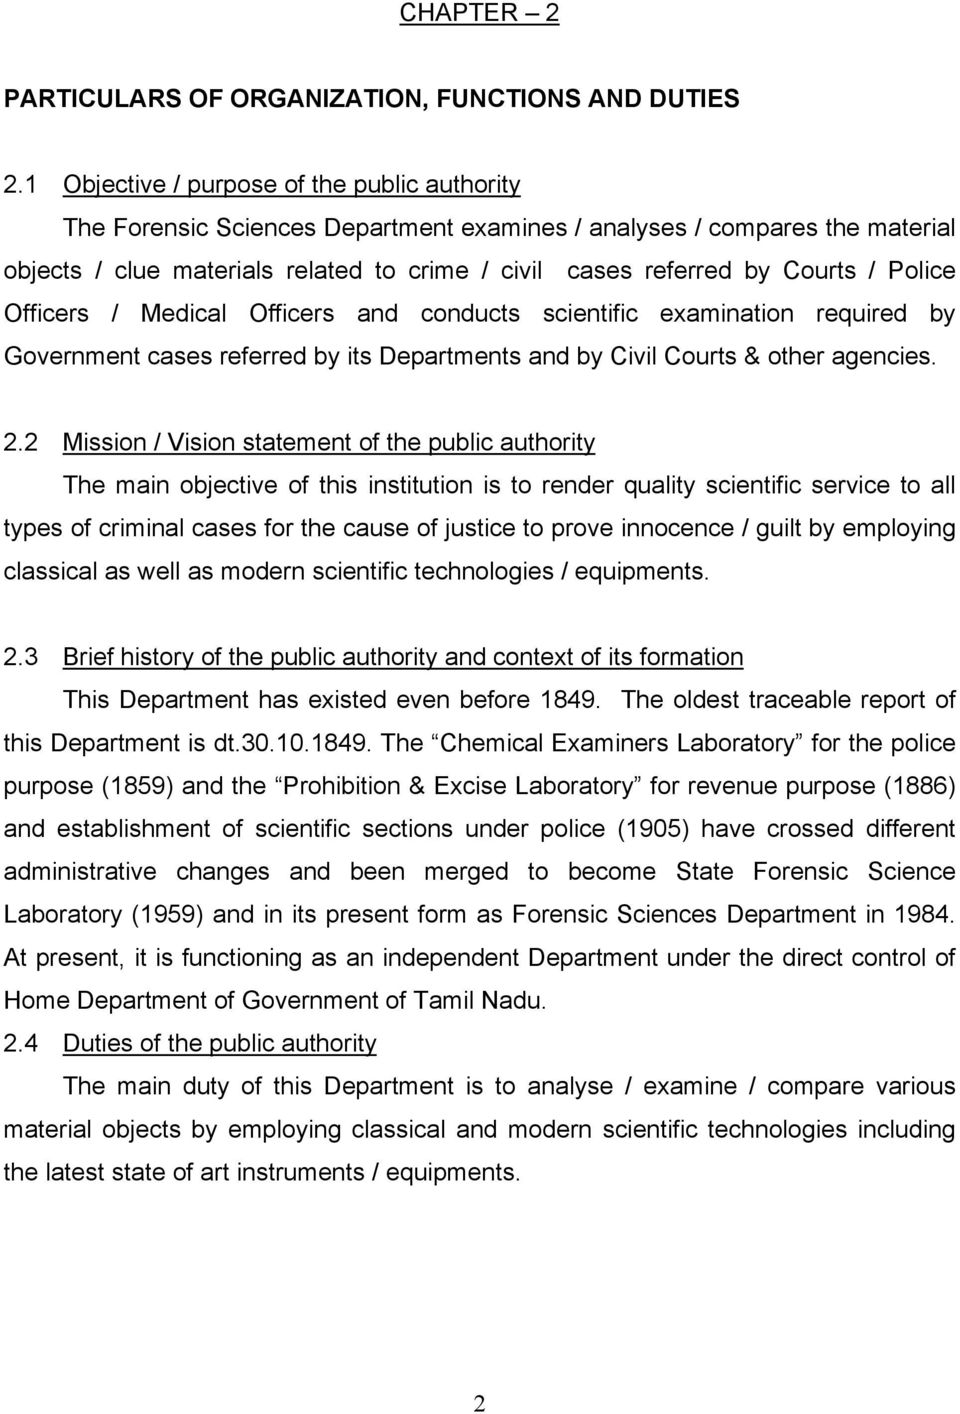 Police Officers / Medical Officers and conducts scientific examination required by Government cases referred by its Departments and by Civil Courts & other agencies. 2.